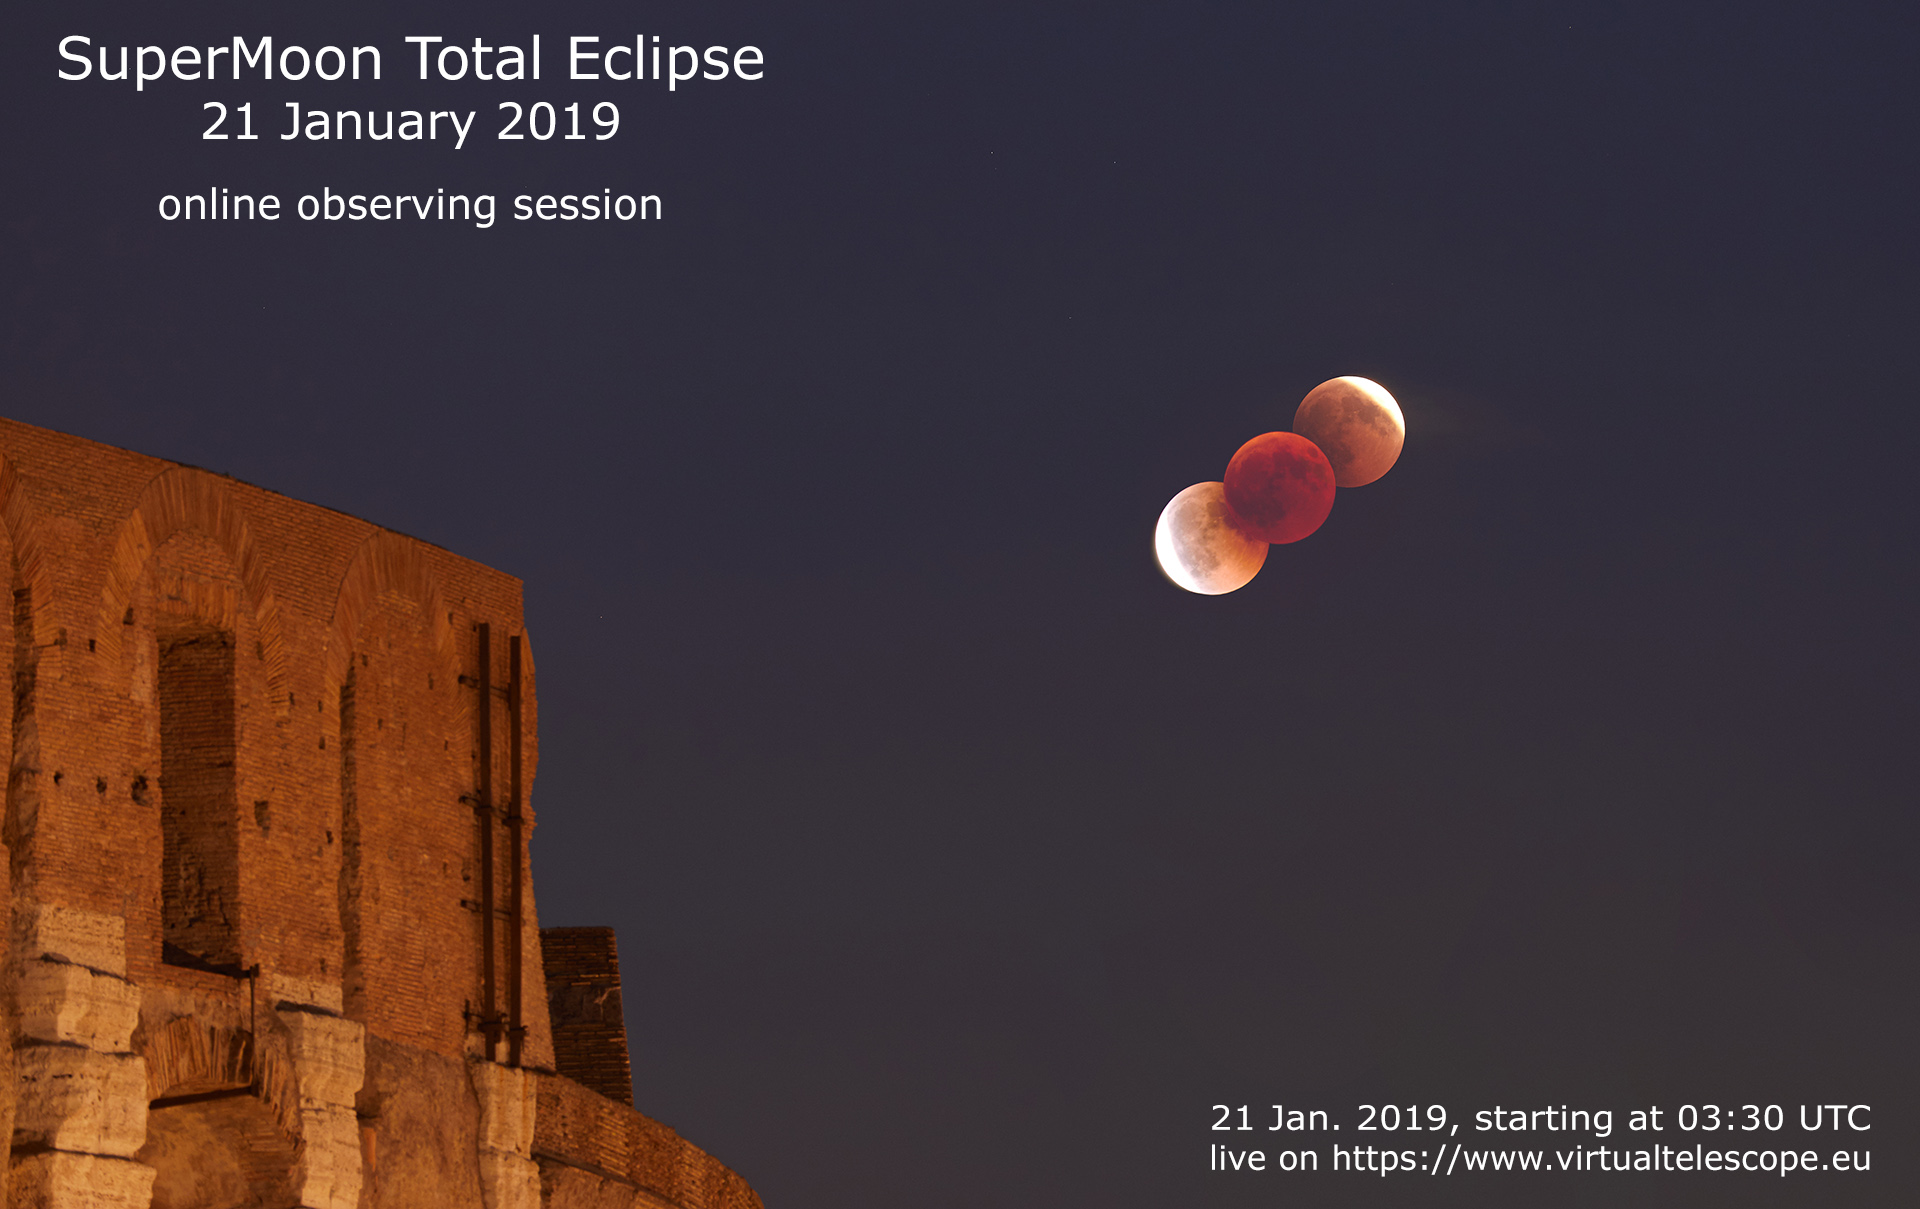 21 Jan. 2019 Total Lunar Eclipse - poster of the event